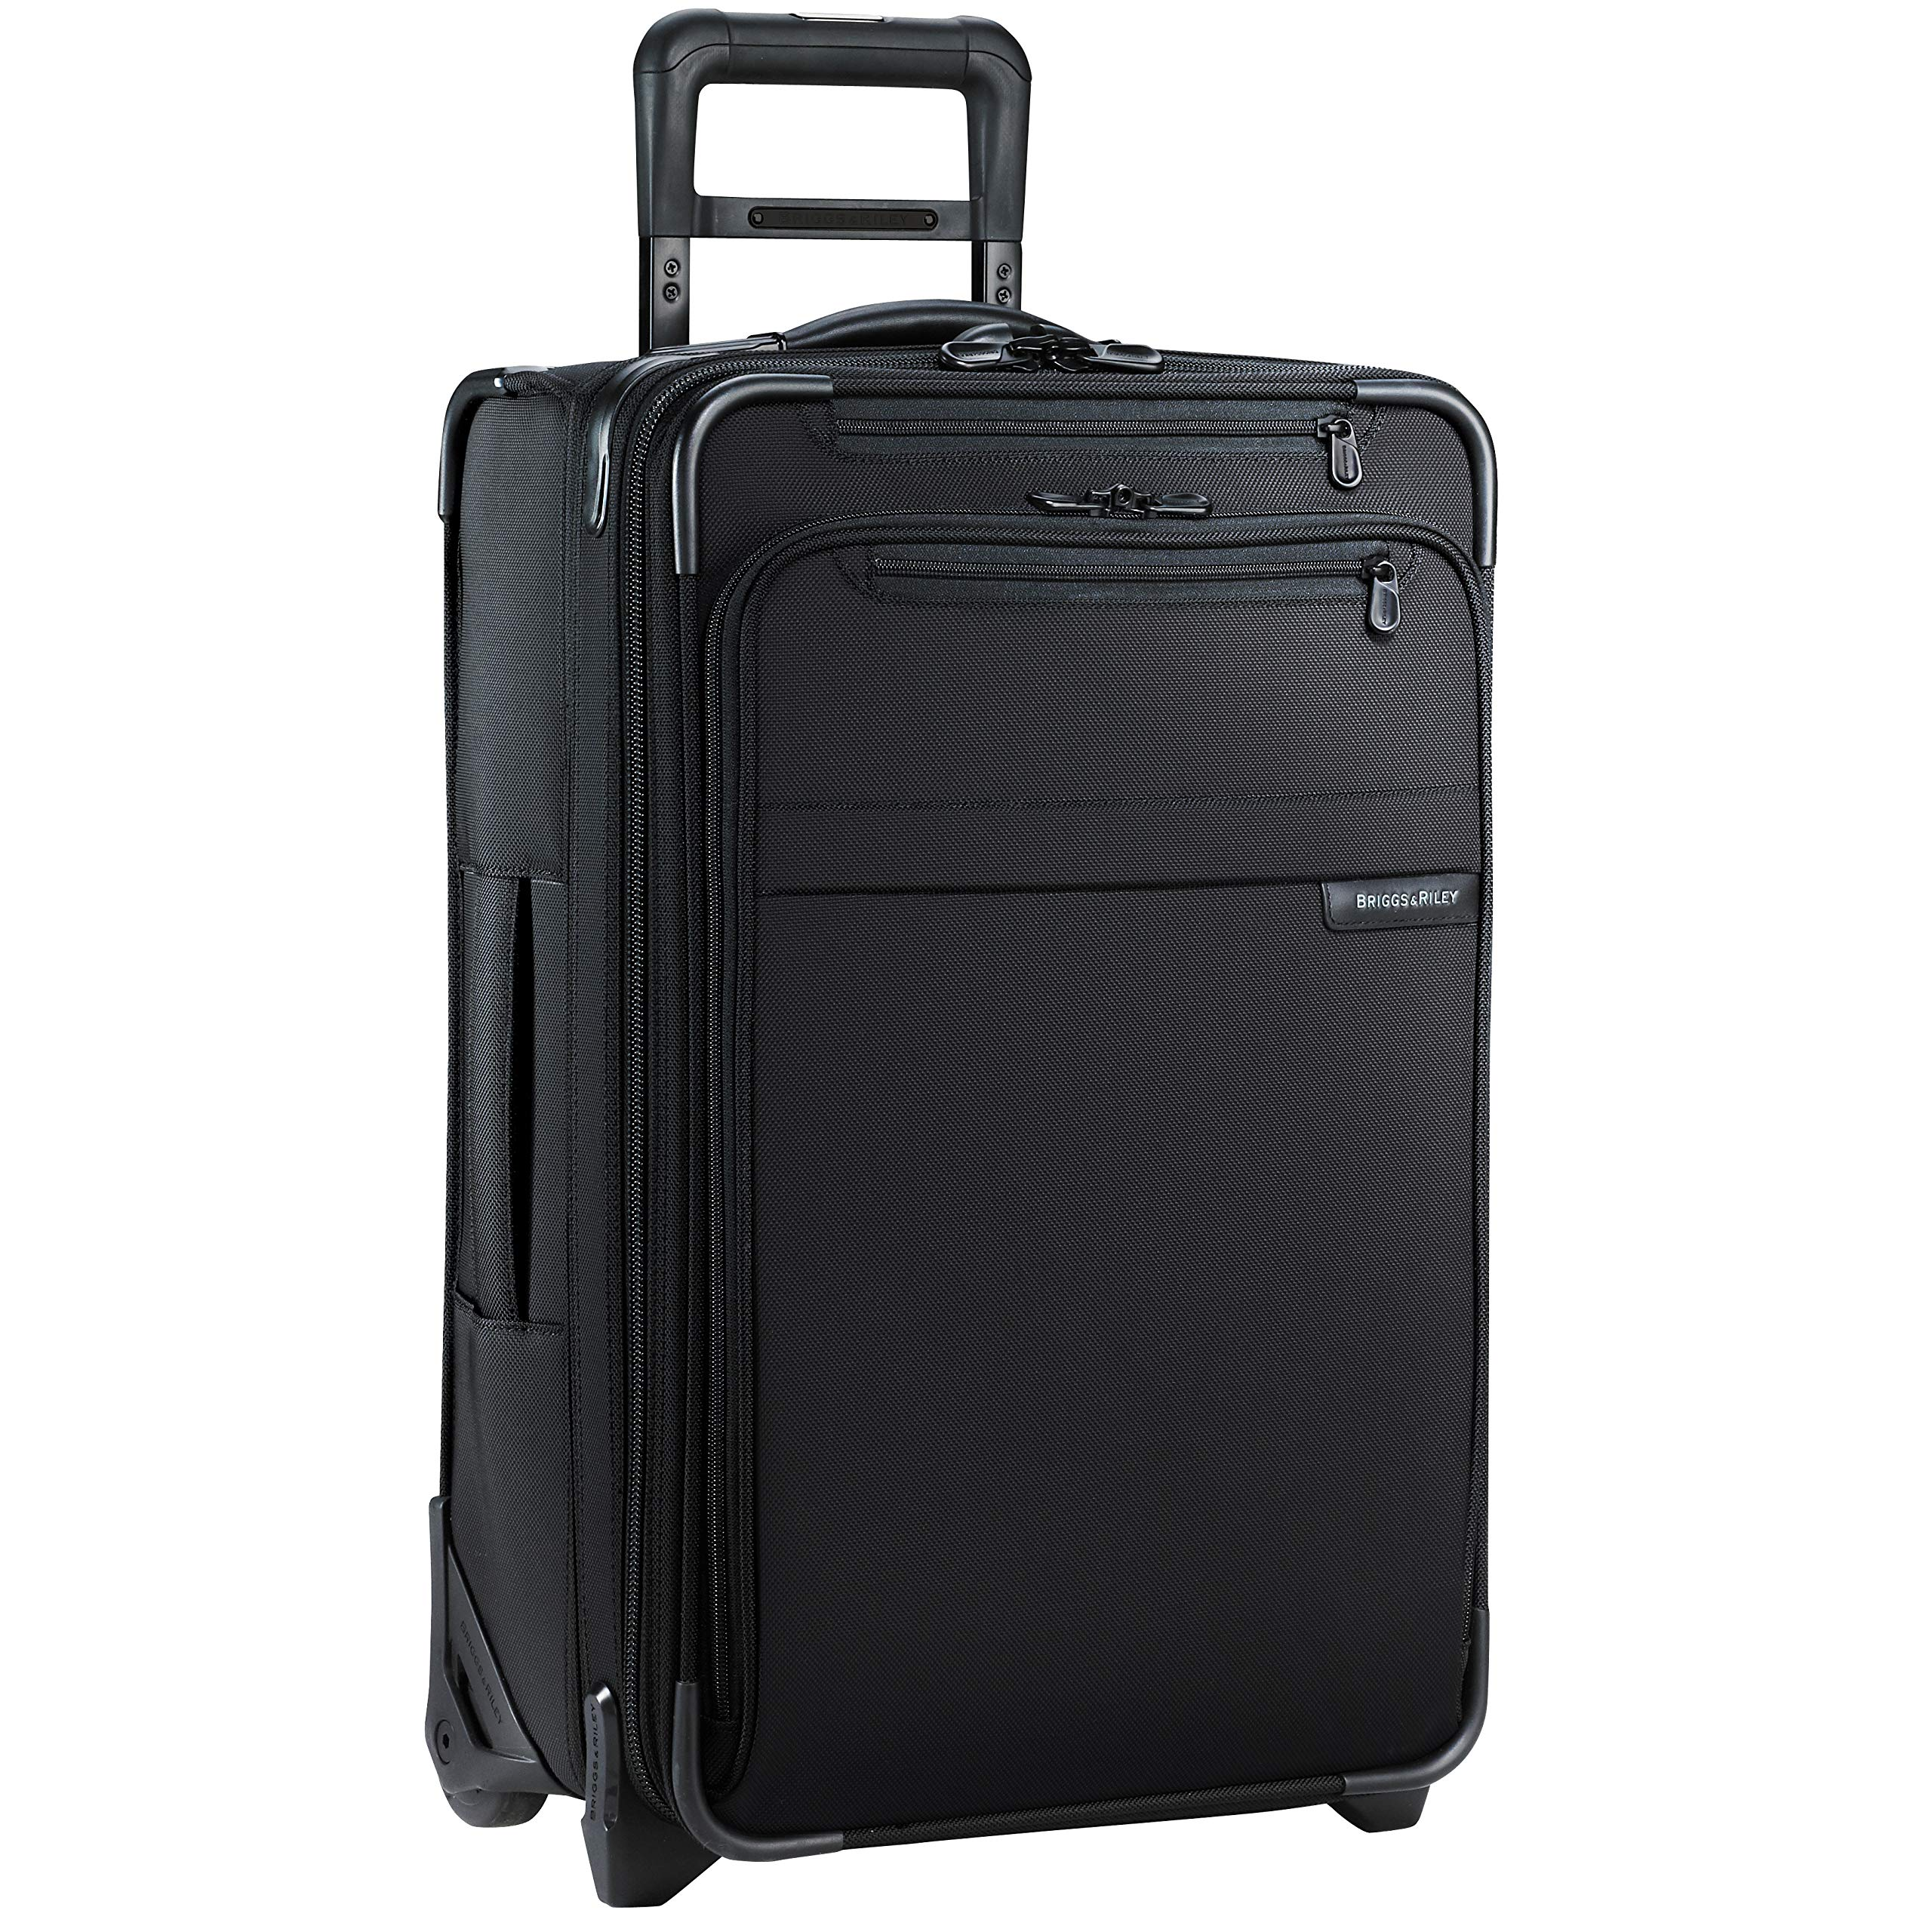 Briggs & Riley Baseline Domestic Expandable Carry-On 22'' Upright, Black